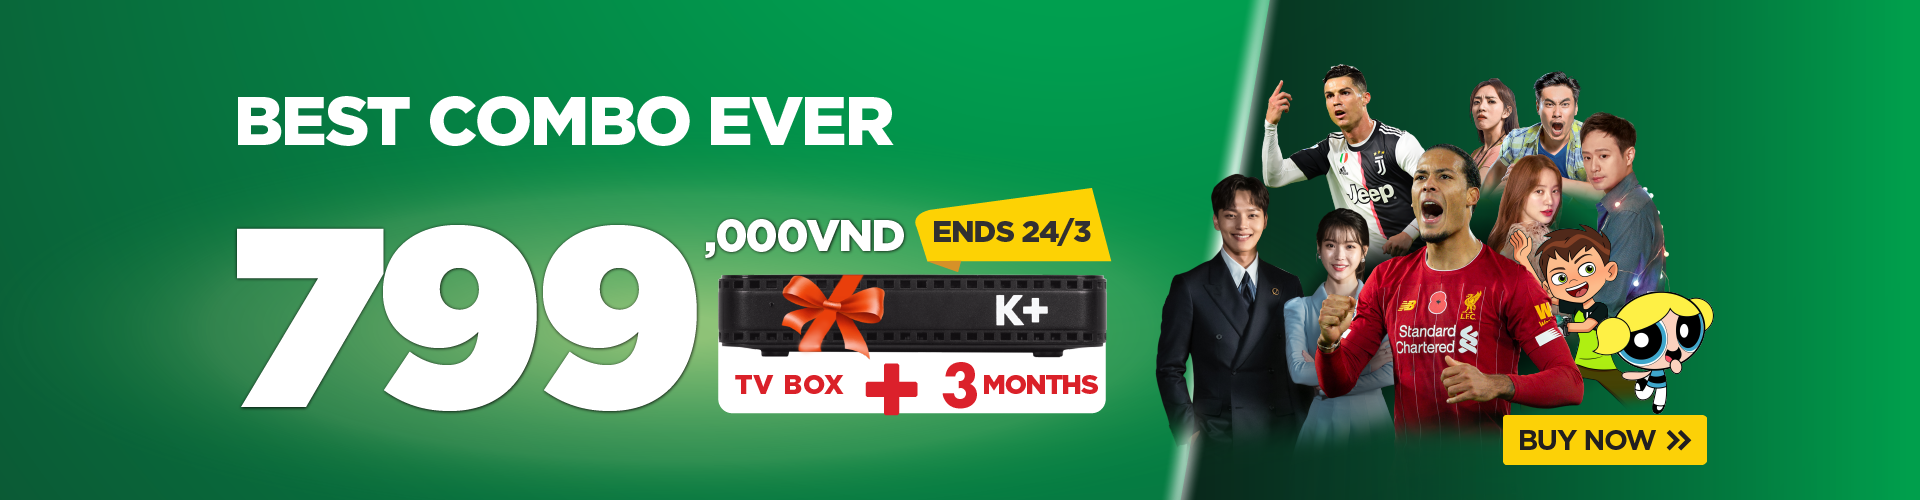 TV BOX 3 month 799,000vnd